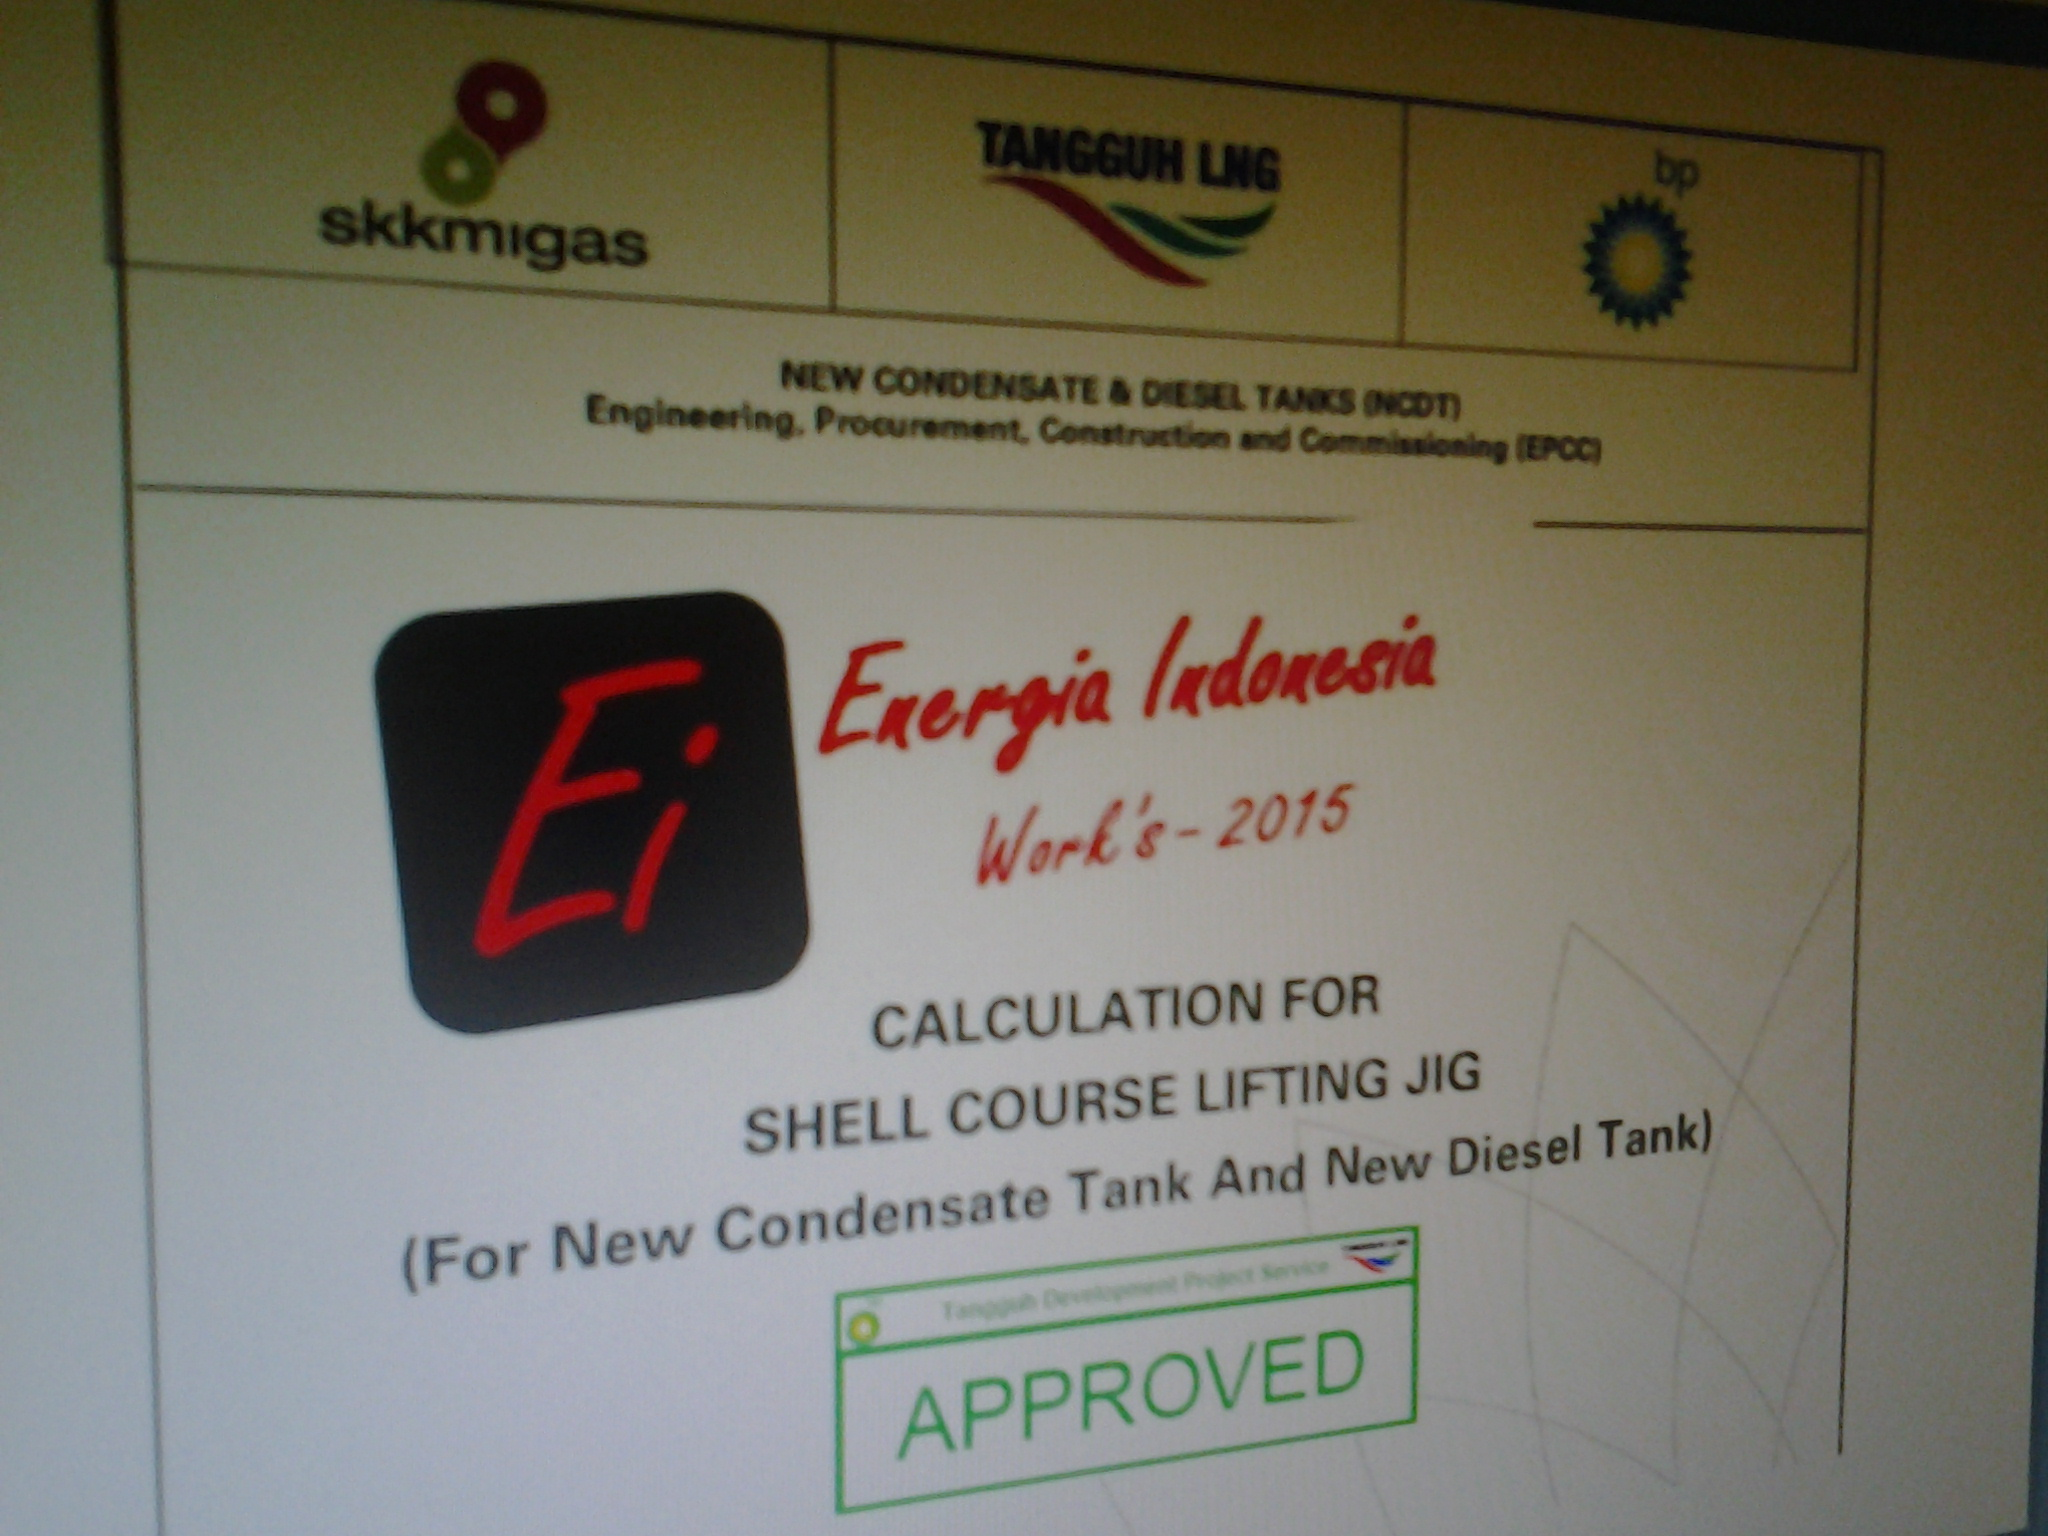 Calculation- Shell course lifting jig BP Project Tangguh